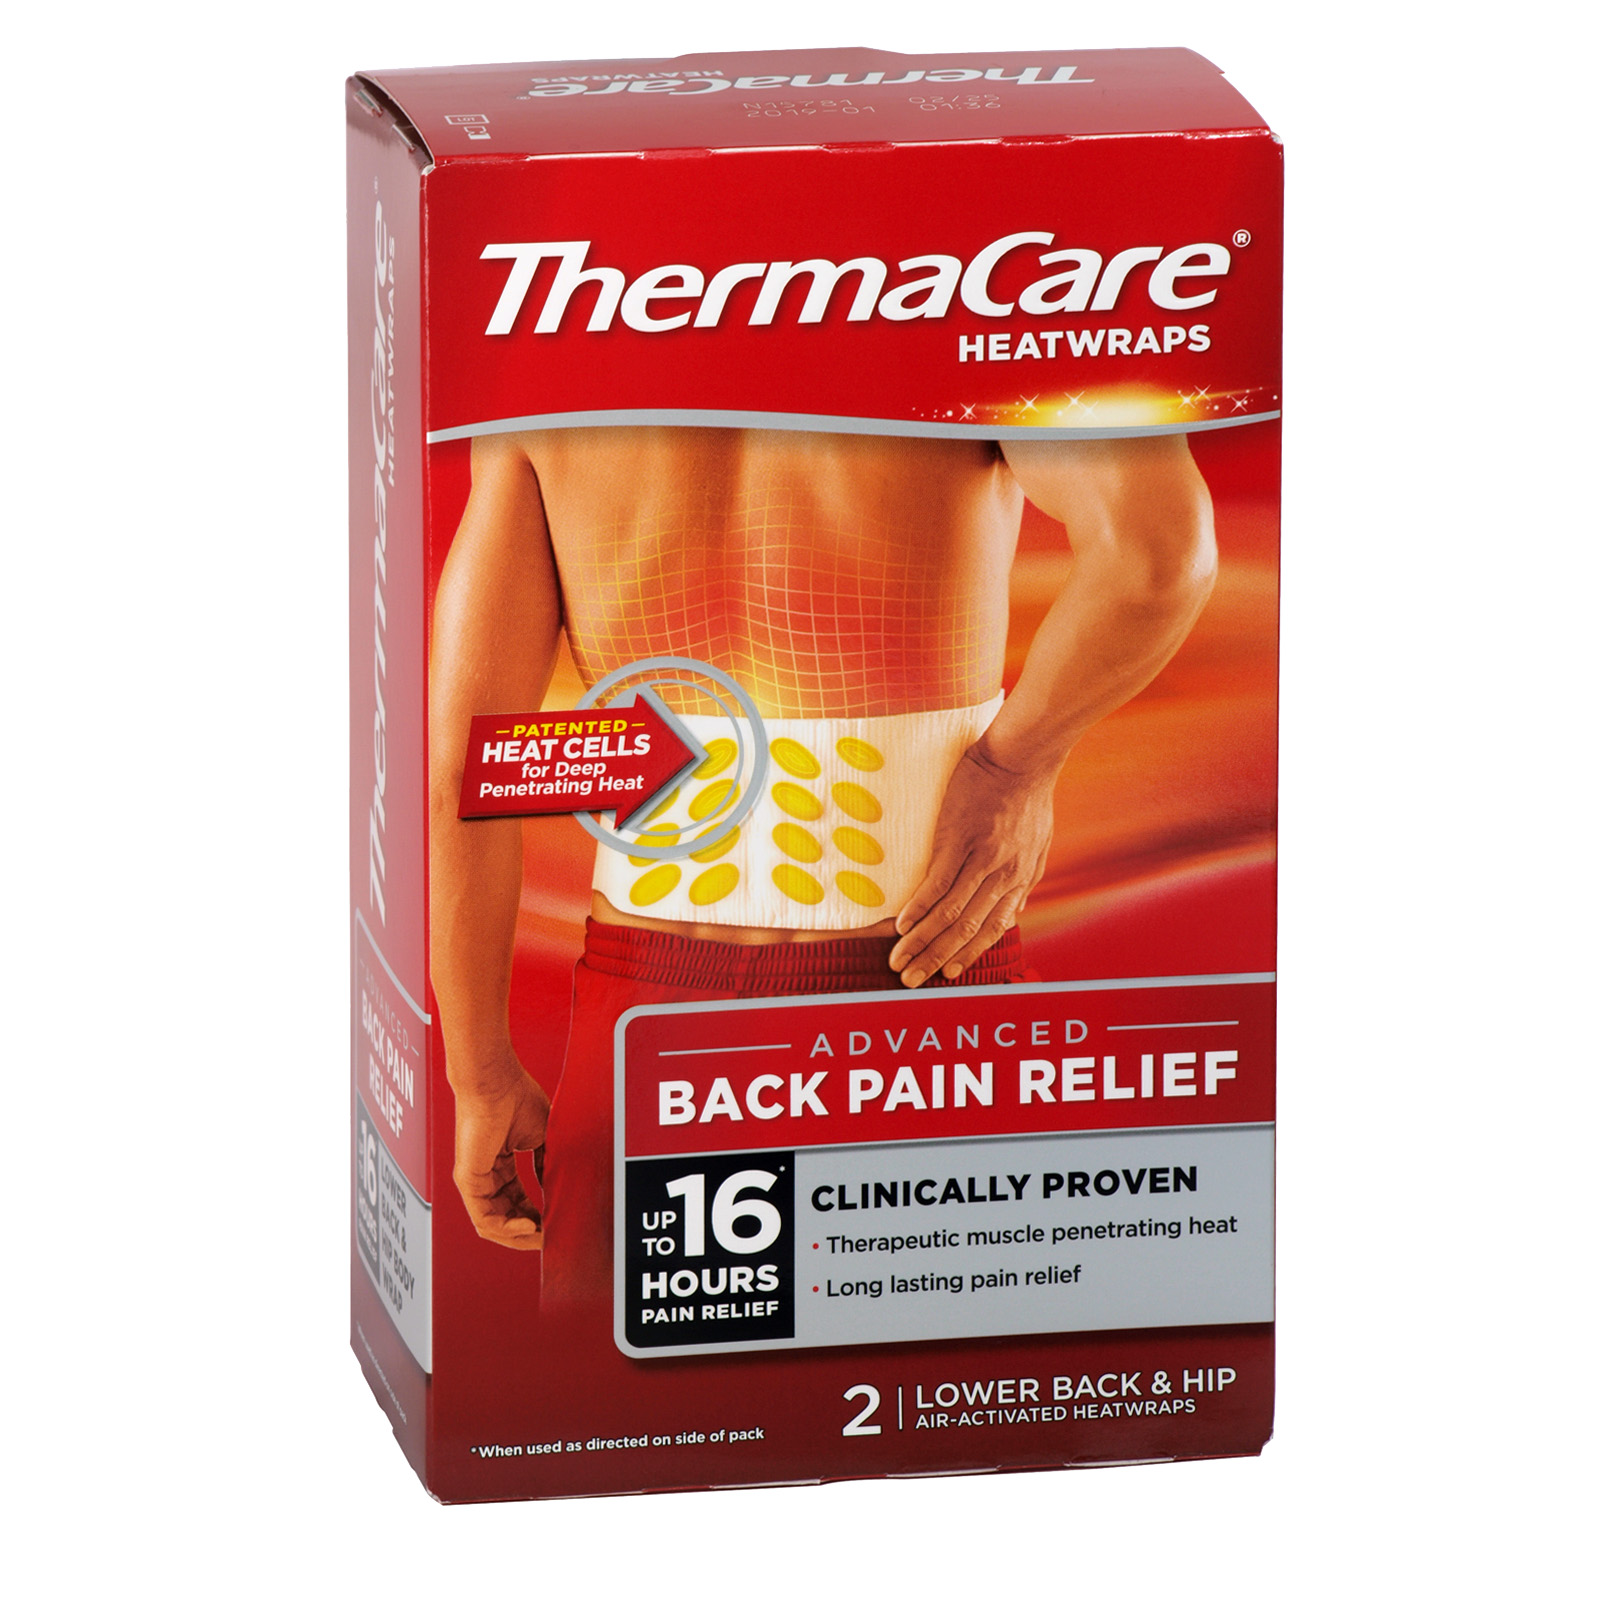 THERMACARE HEAT WRAPS 2PK LOWER BACK AND HIP RSP ?6.12